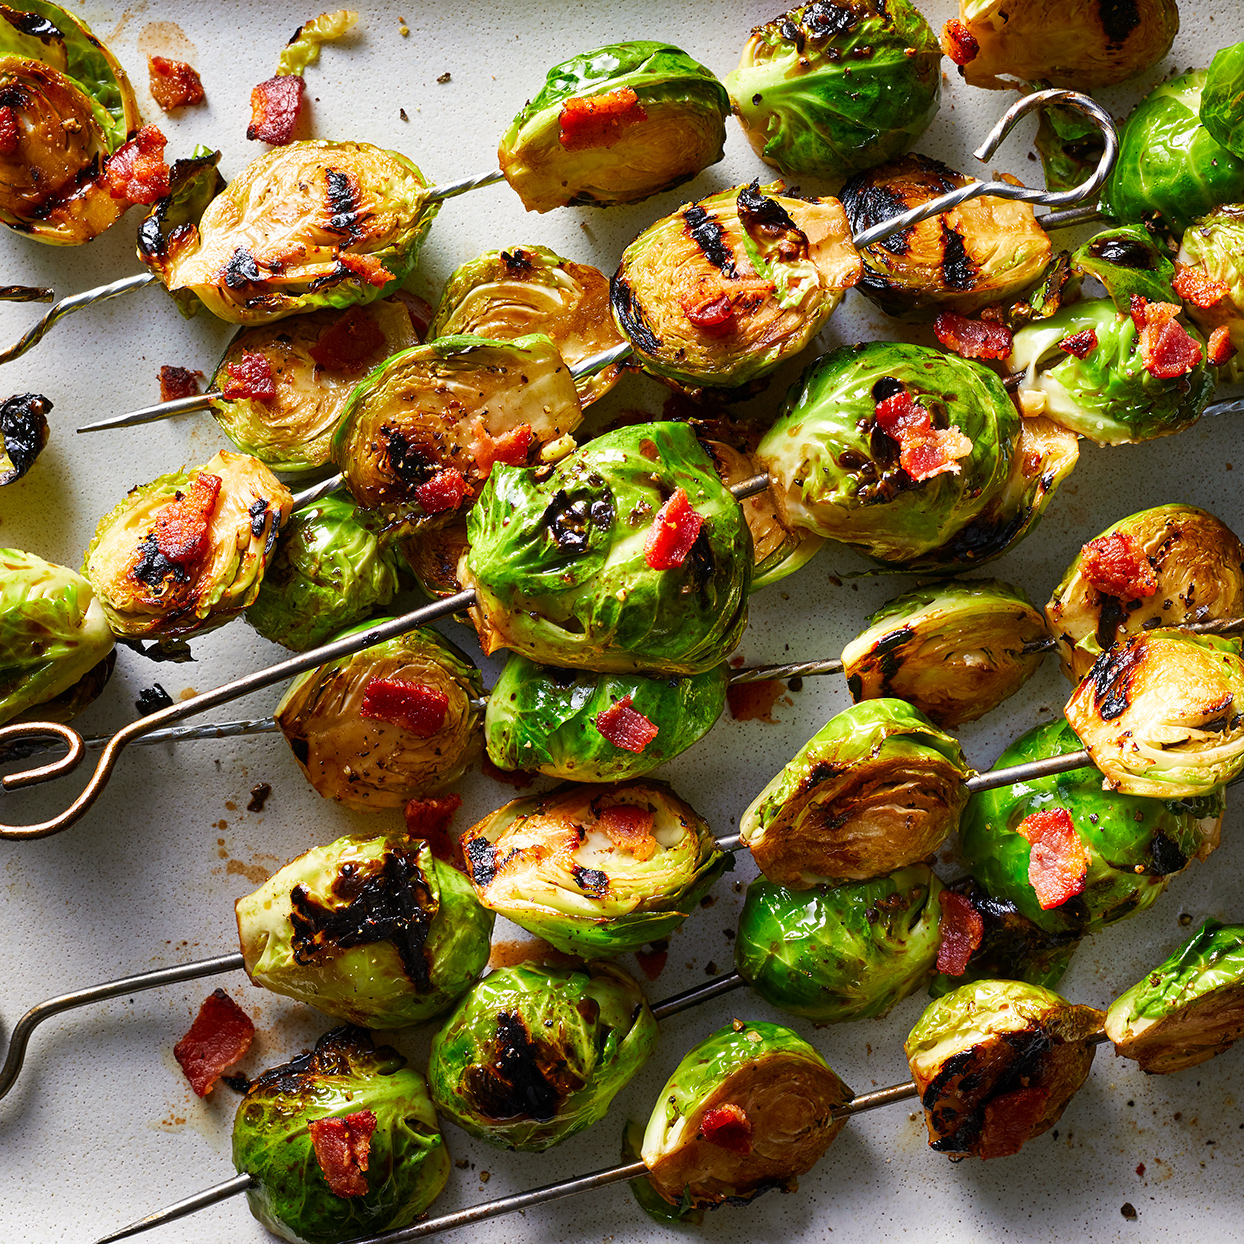 Grilled Brussels Sprouts with Bacon & Honey-Balsamic Glaze